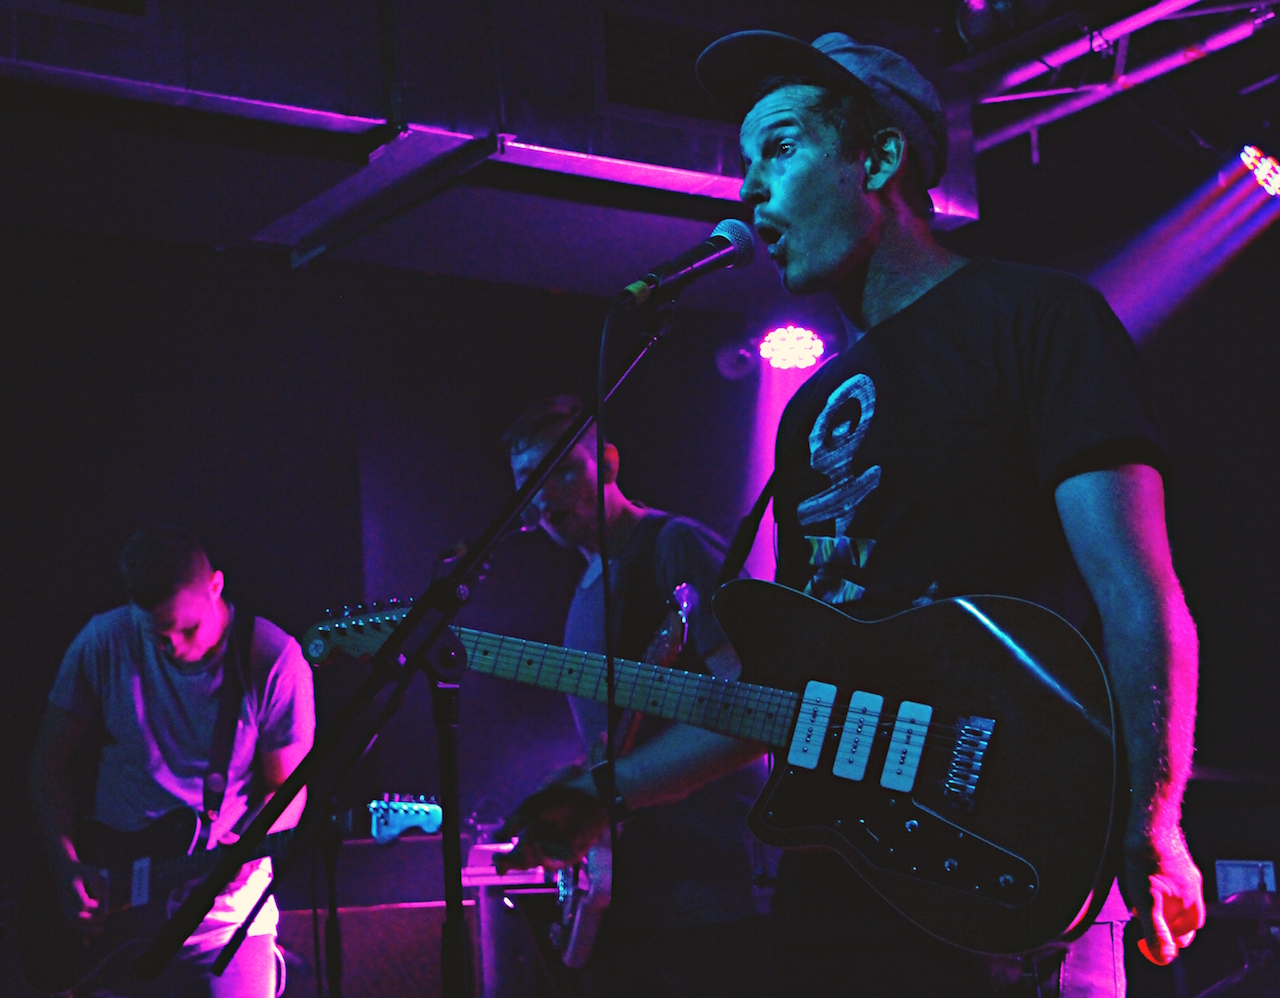 Live Review: Hey Geronimo w/ Selahphonic & Beneb @ The Foundry |